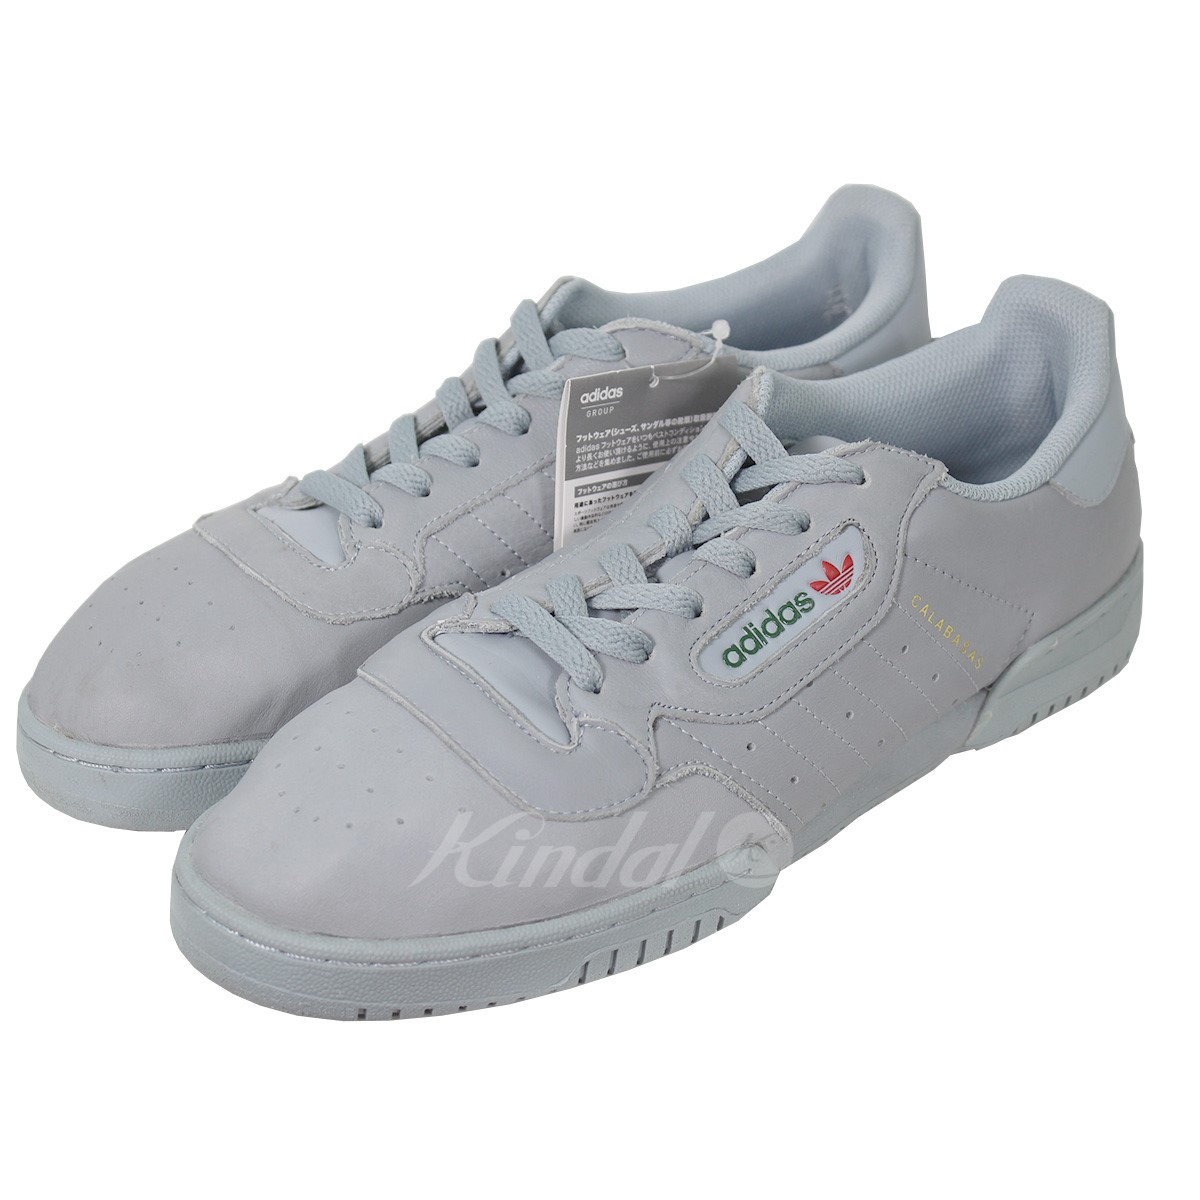 【中古】adidas originals by Kanye West YEEZY POWERPHASE イージーパワーフェイズ スニカー 【送料無料】 【001346】 【KJ1368】